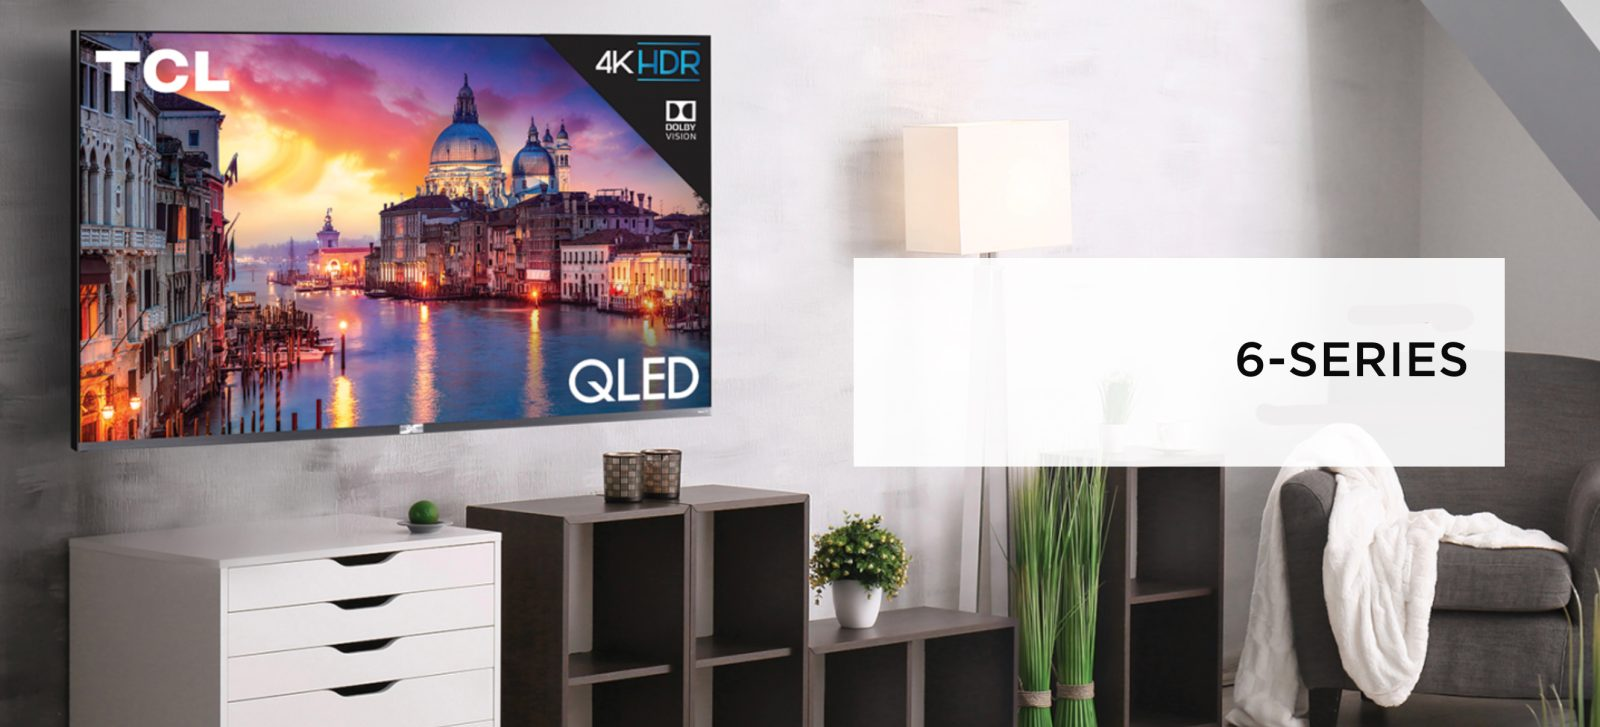 TCL's affordable 6-series 4K HDR TVs arrive today from $600